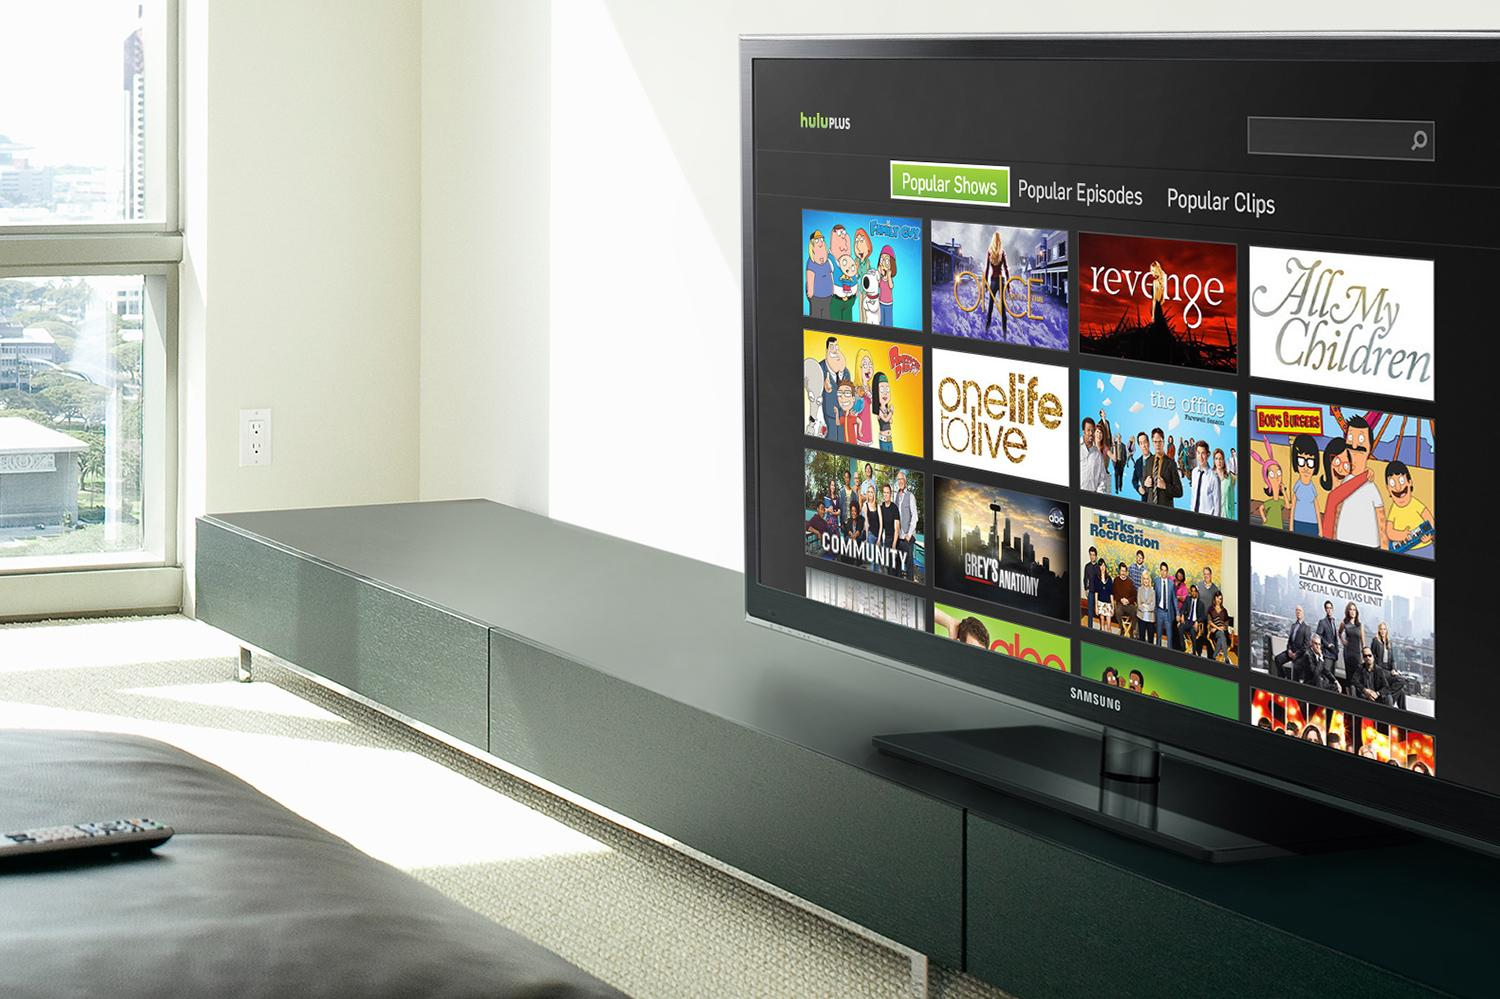 How to Watch Hulu Outside the US - How to Watch